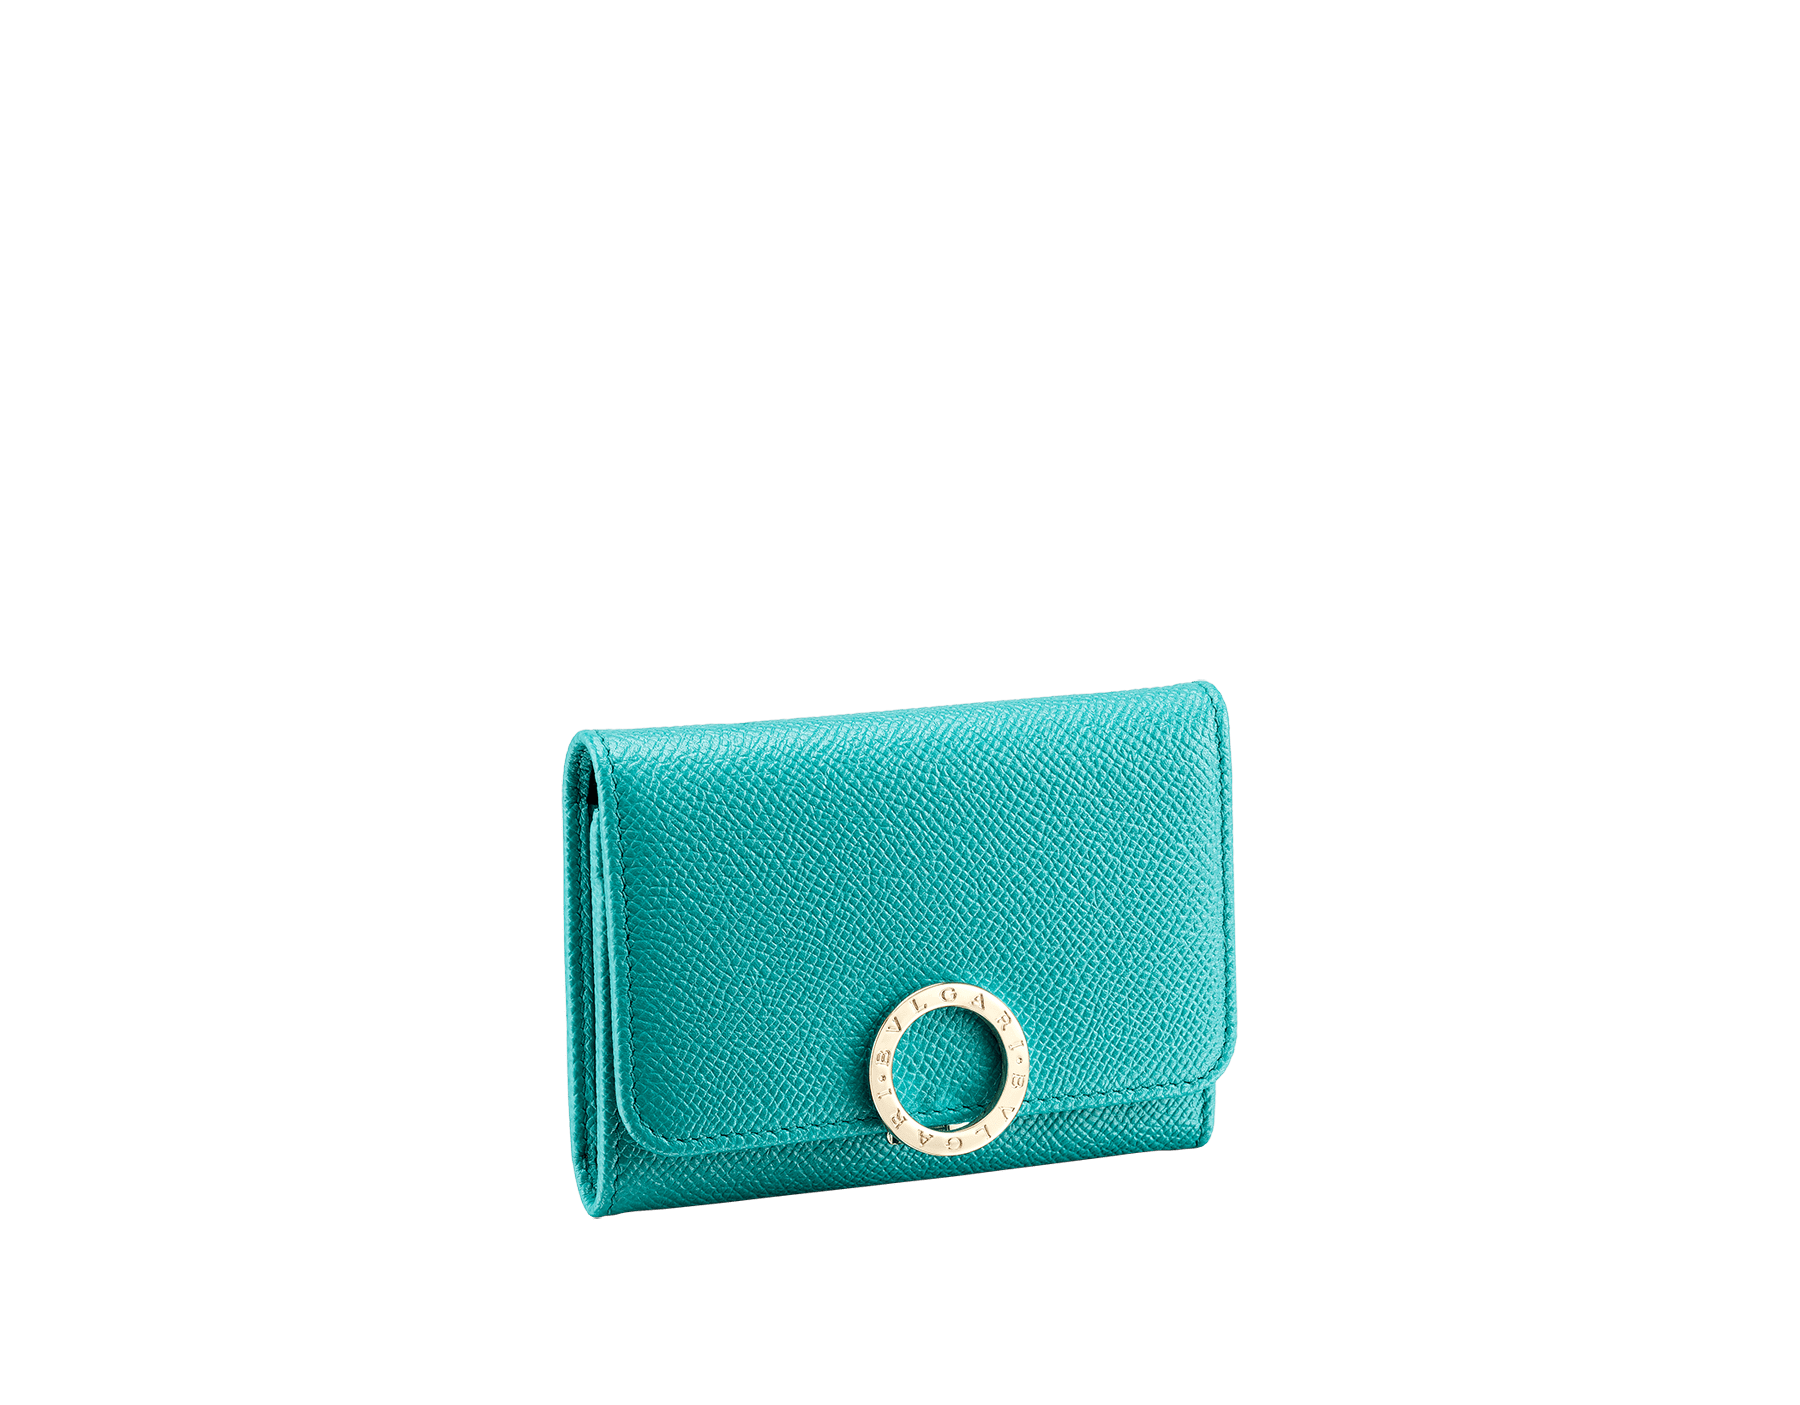 BVLGARI BVLGARI business card holder in arctic jade grain calf leather and grape amethyst nappa leather. Iconic logo closure clip in light gold plated brass. 289037 image 1